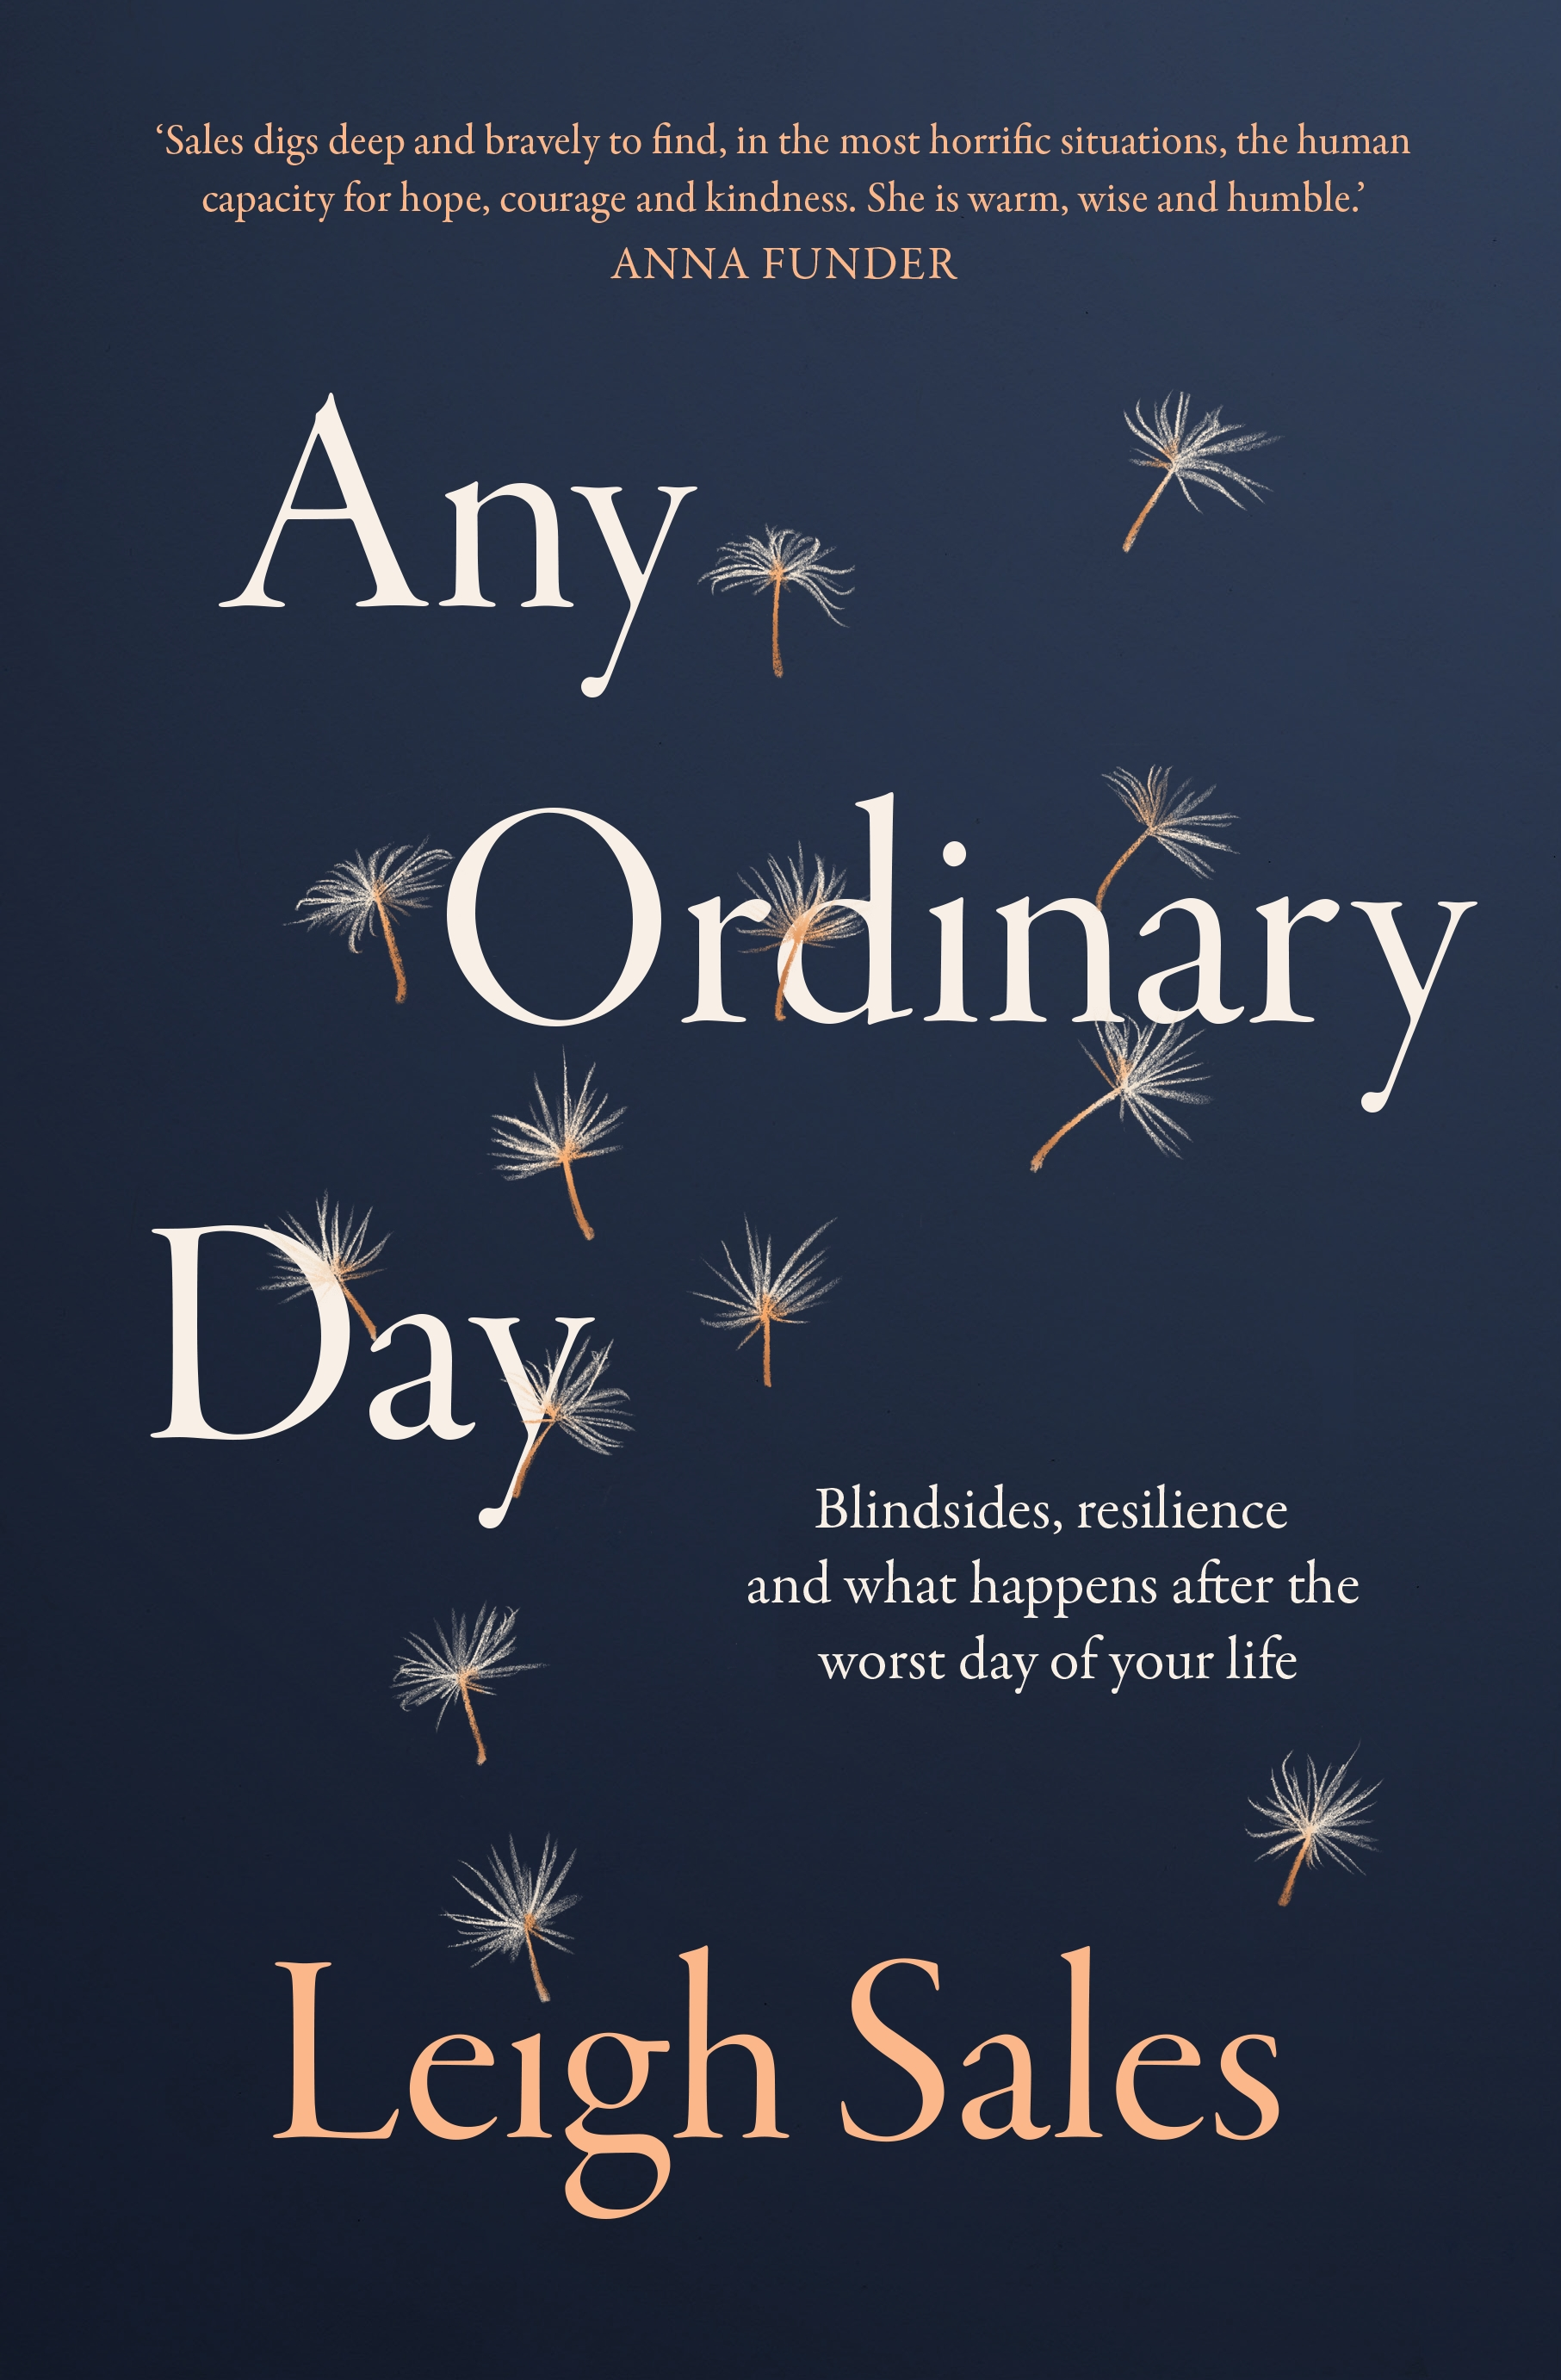 Any Ordinary Day by Leigh Sales (Hamish Hamilton)